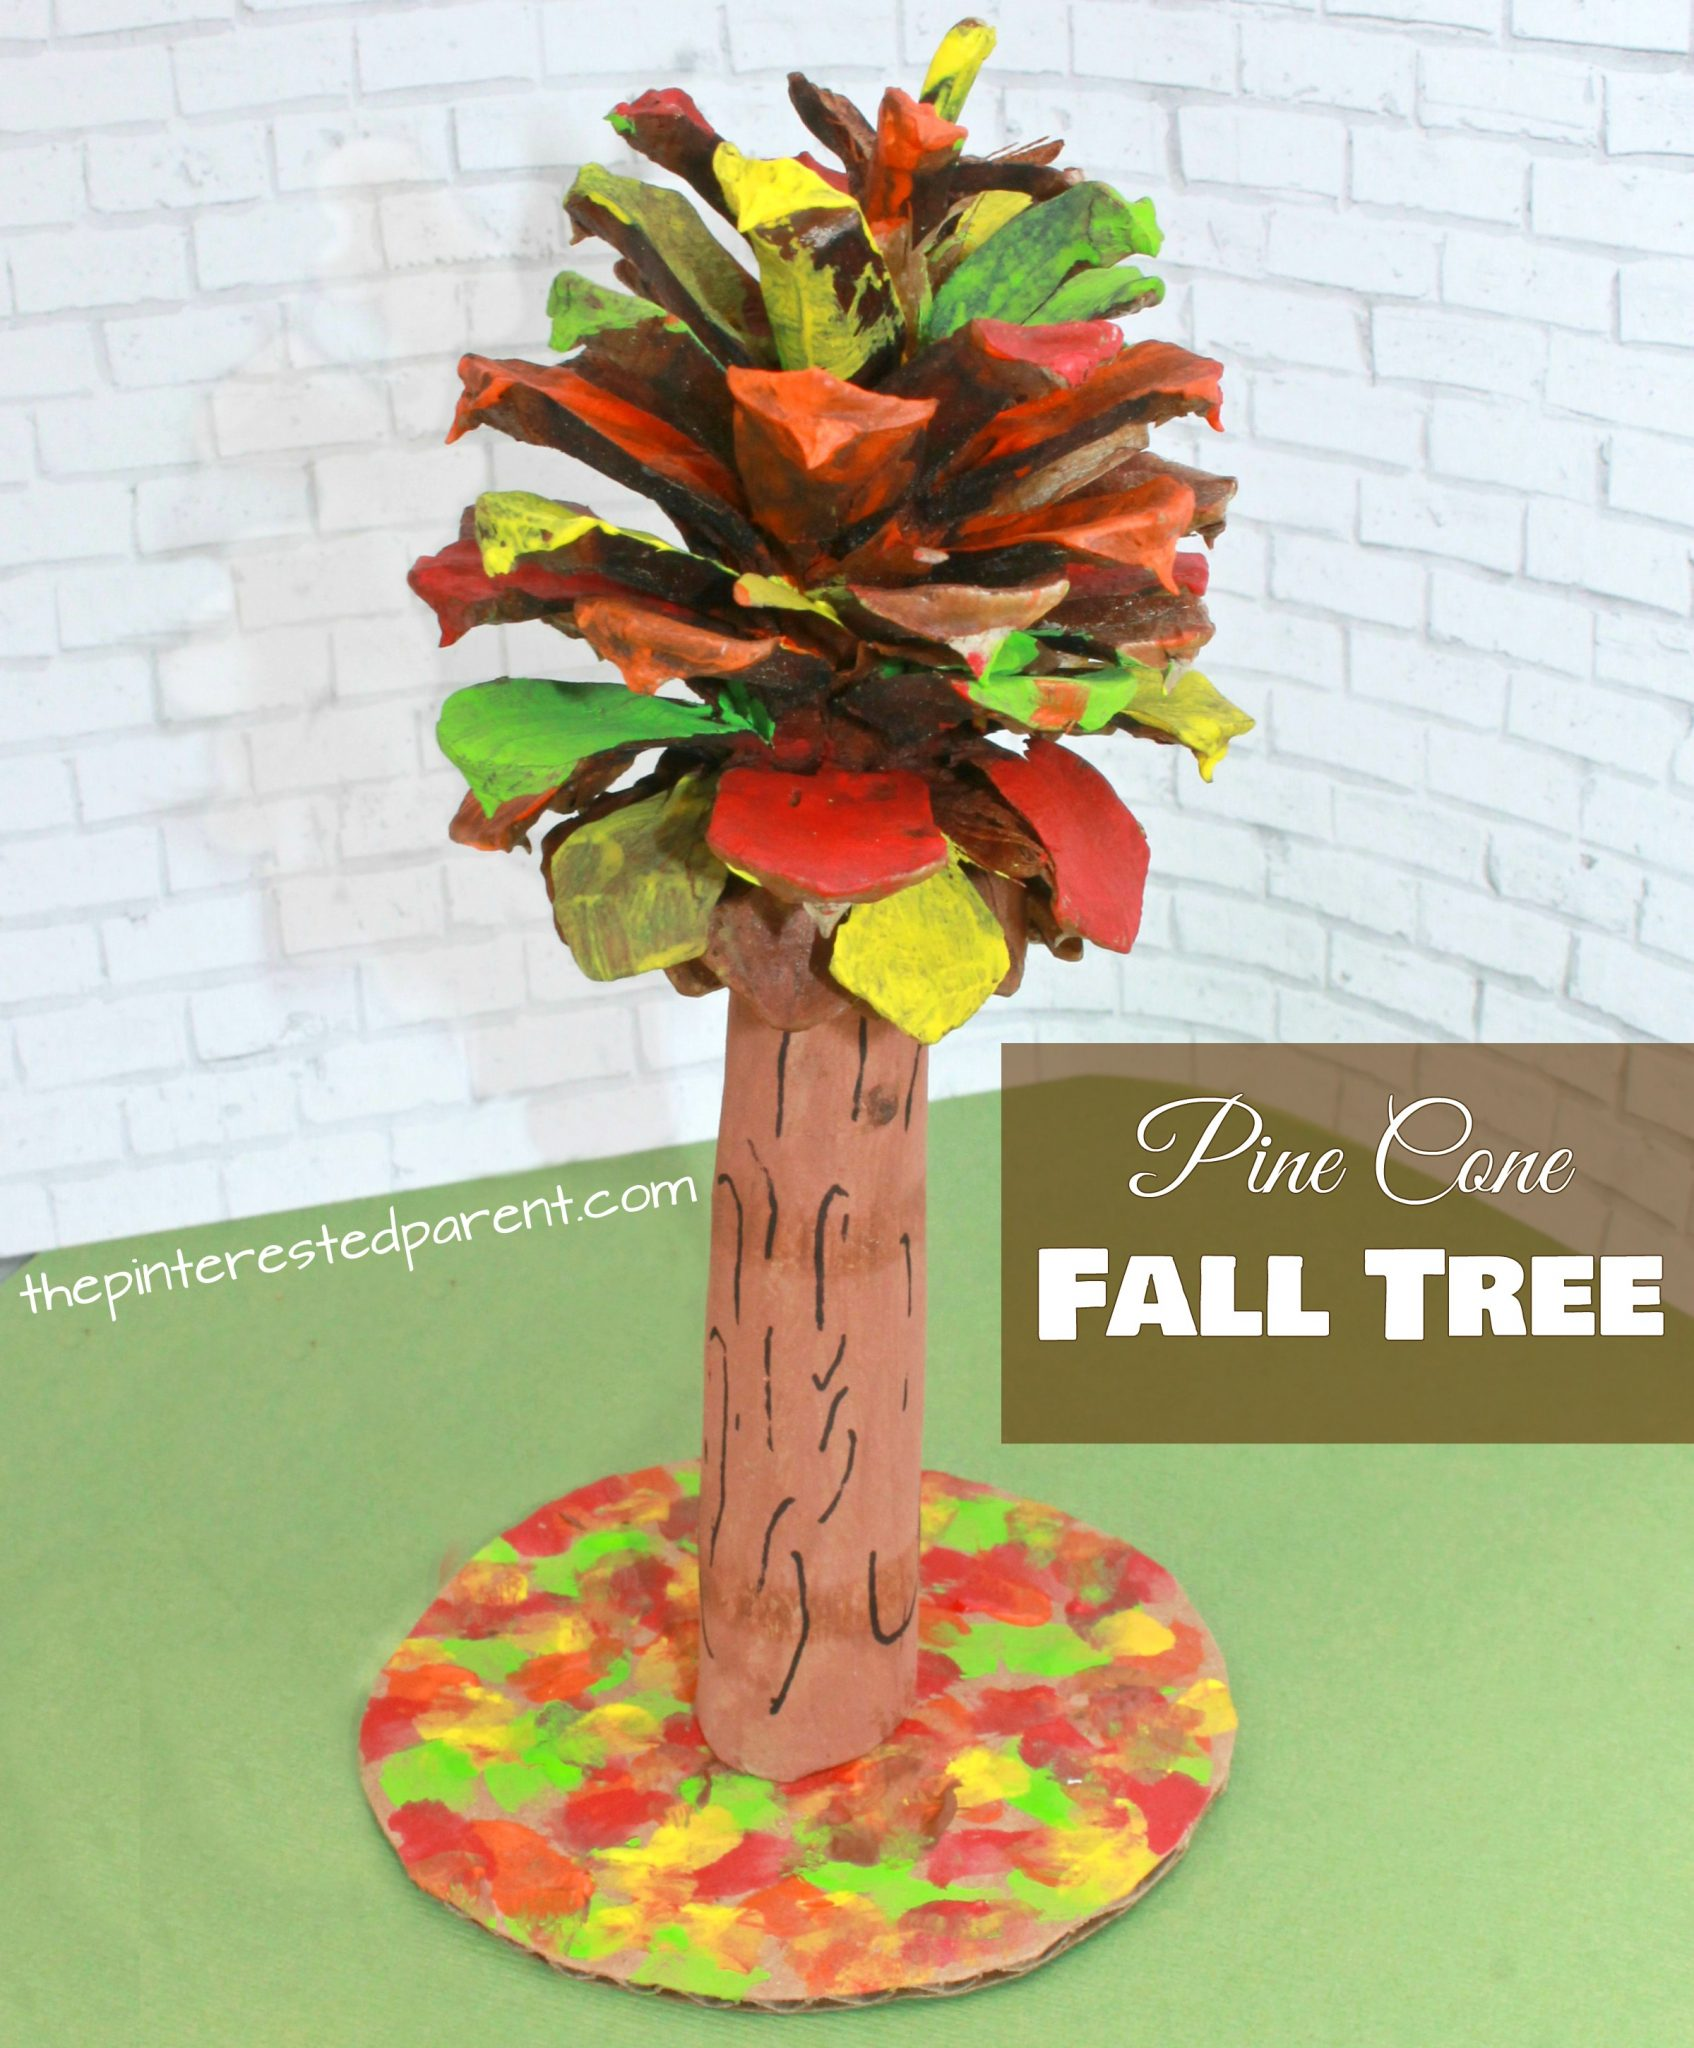 Pine Cone Fall Tree Craft The Pinterested Parent